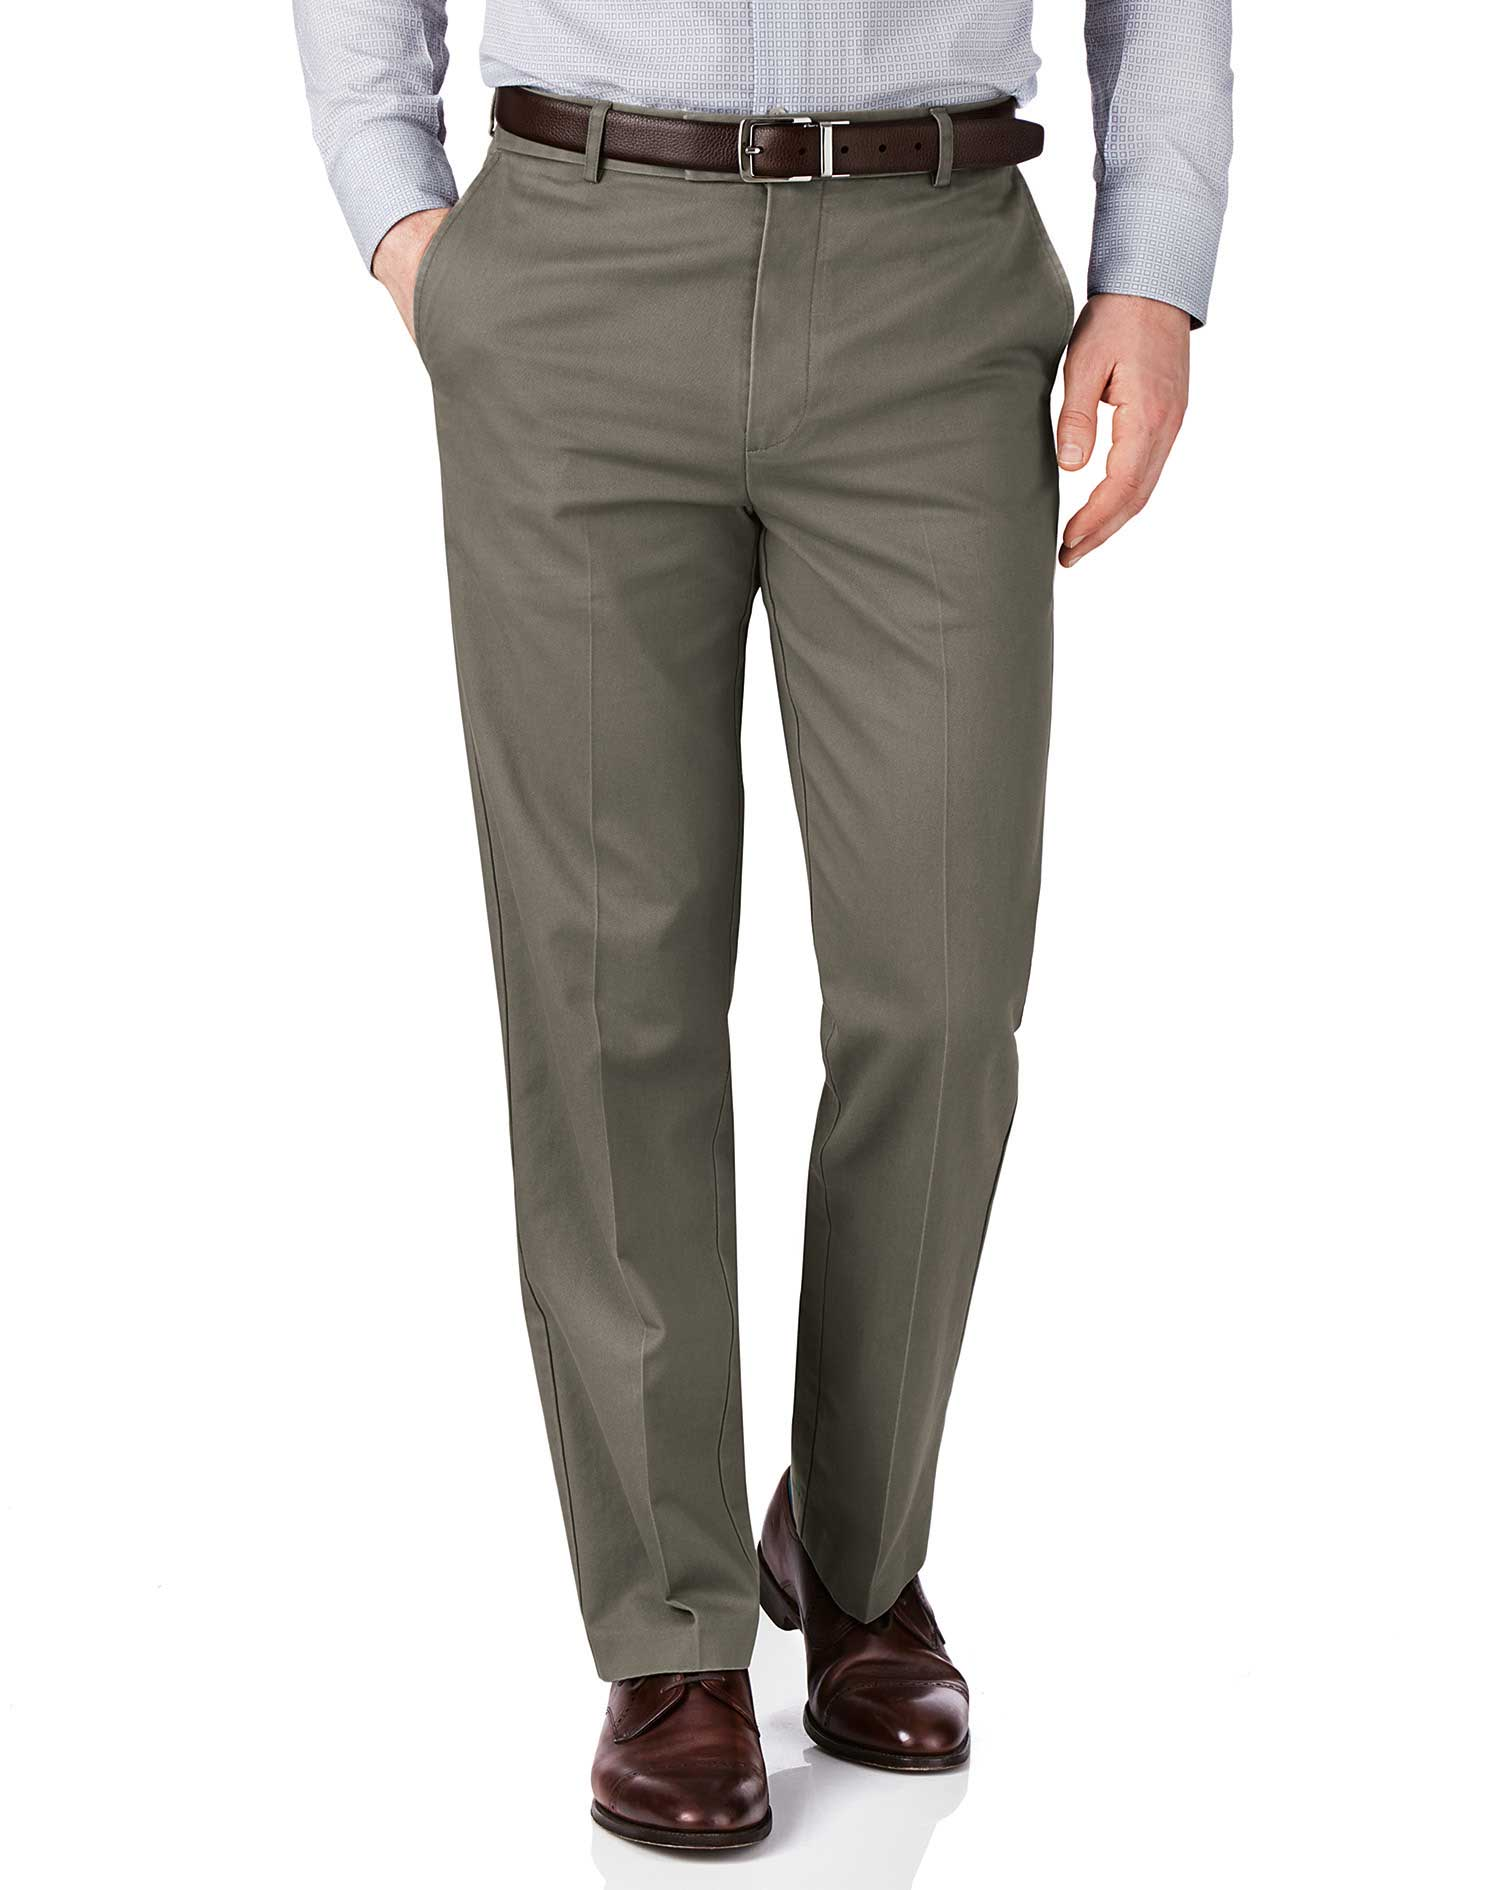 Olive Green Slim Fit Flat Front Non-Iron Cotton Chino Trousers Size W32 L34 by Charles Tyrwhitt